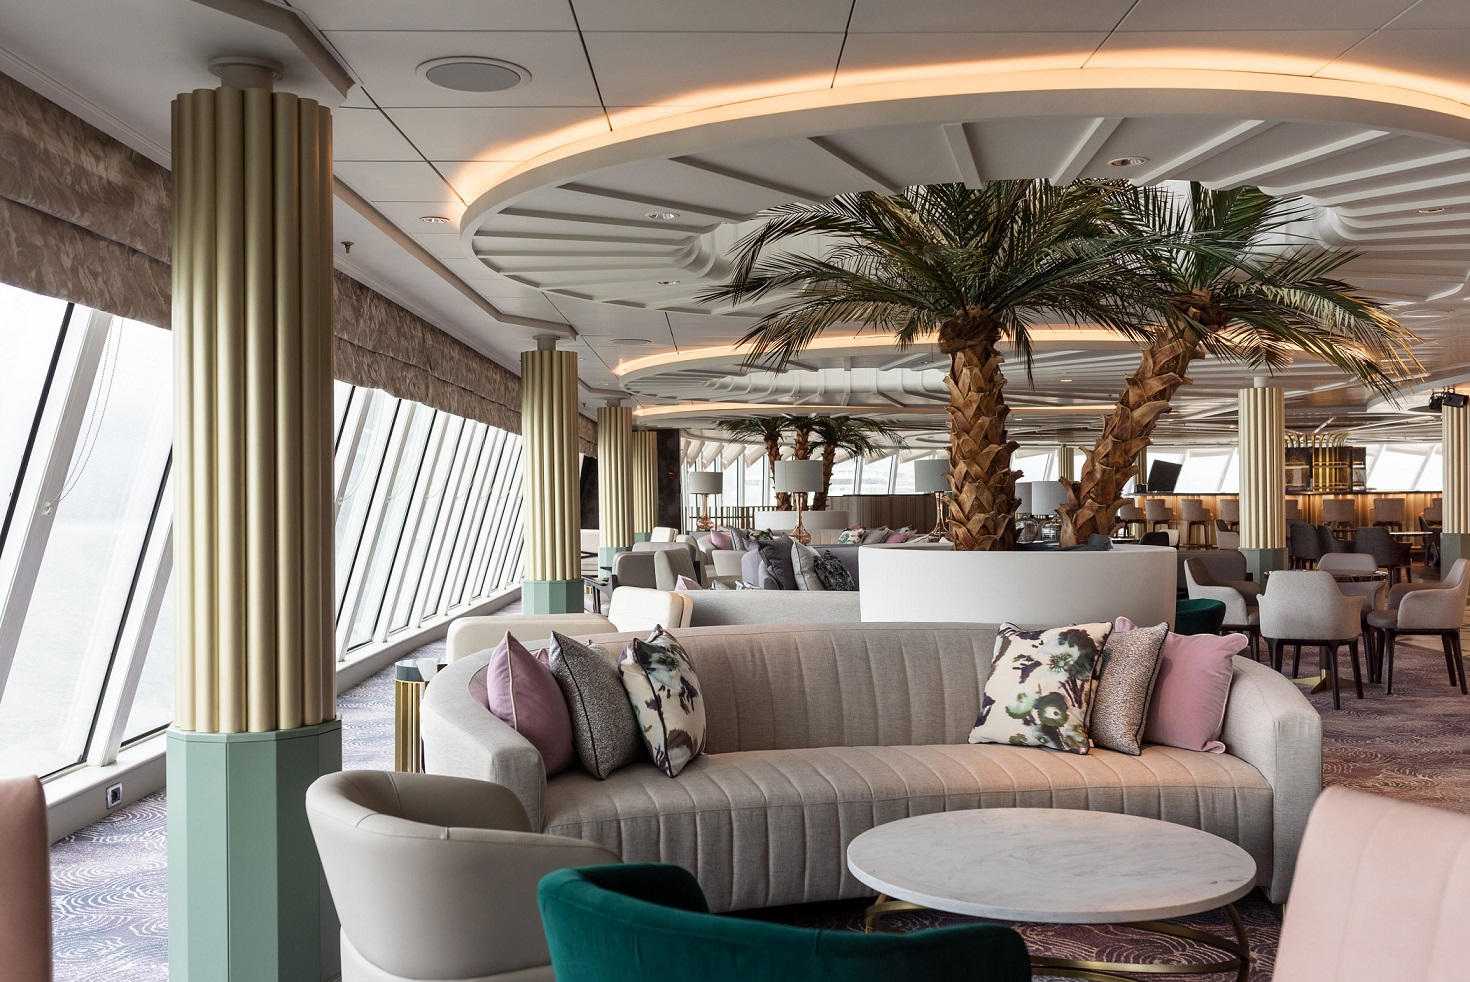 Palm Court ombord Crystal Serenity